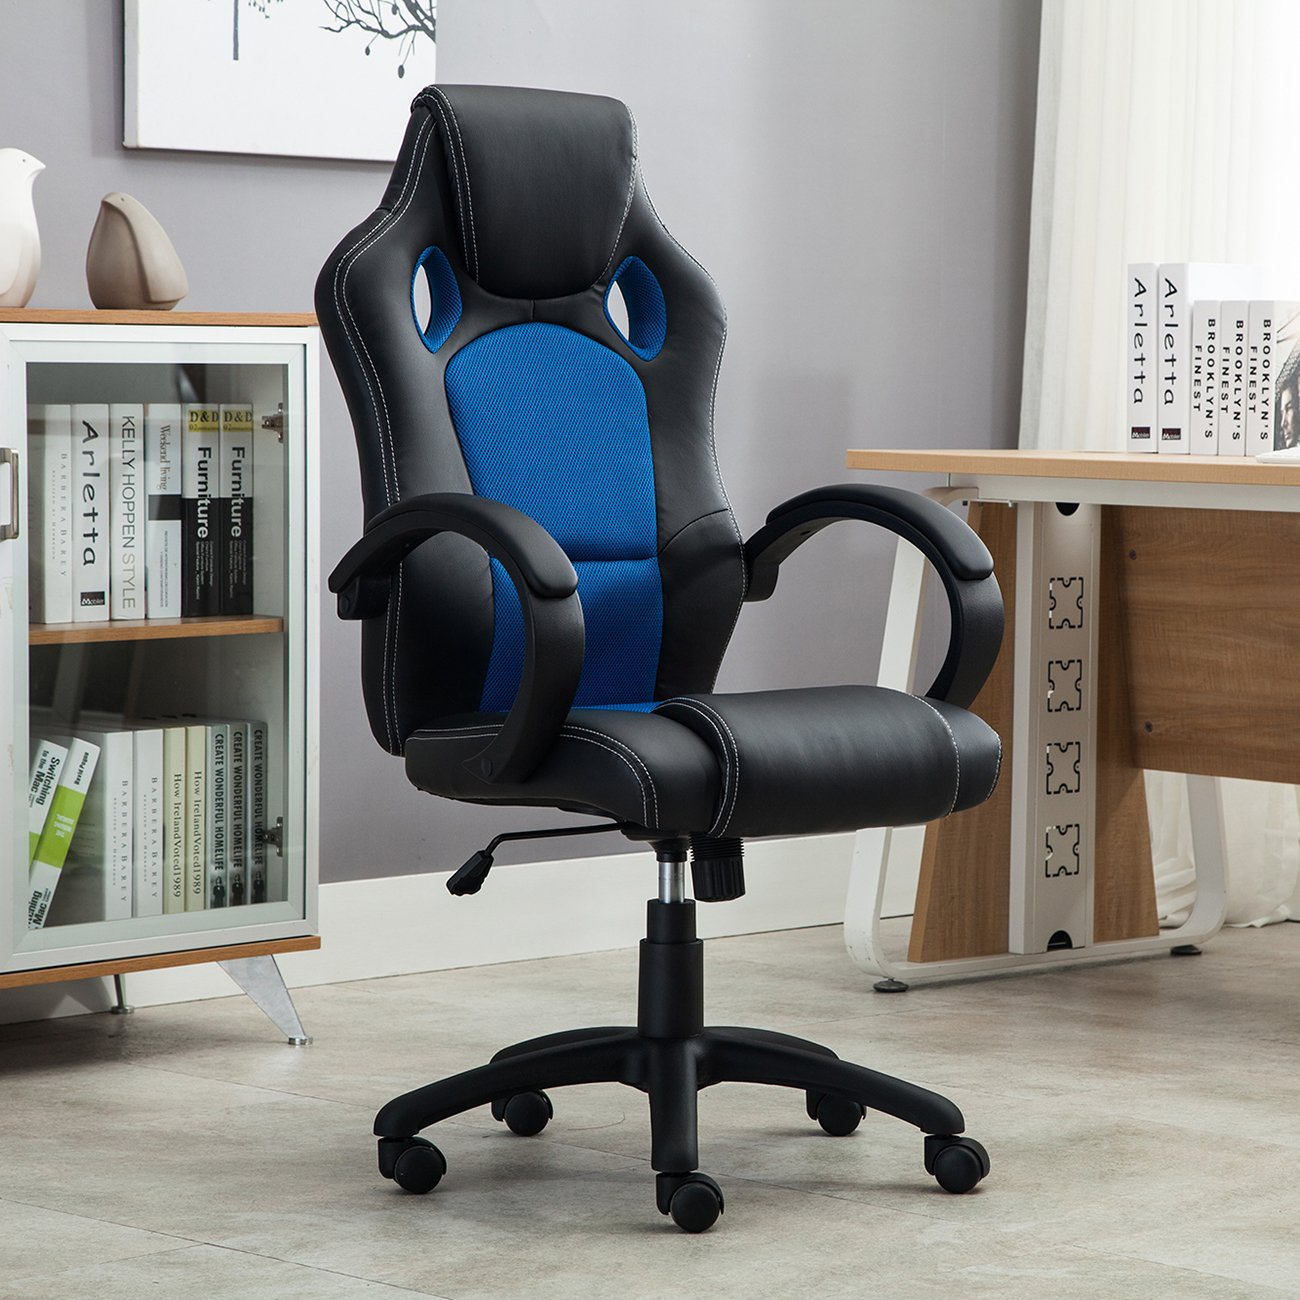 amazoncom belleze racing high back office chair pu leather computer desk gaming swivel wheel seat blackblue kitchen u0026 dining